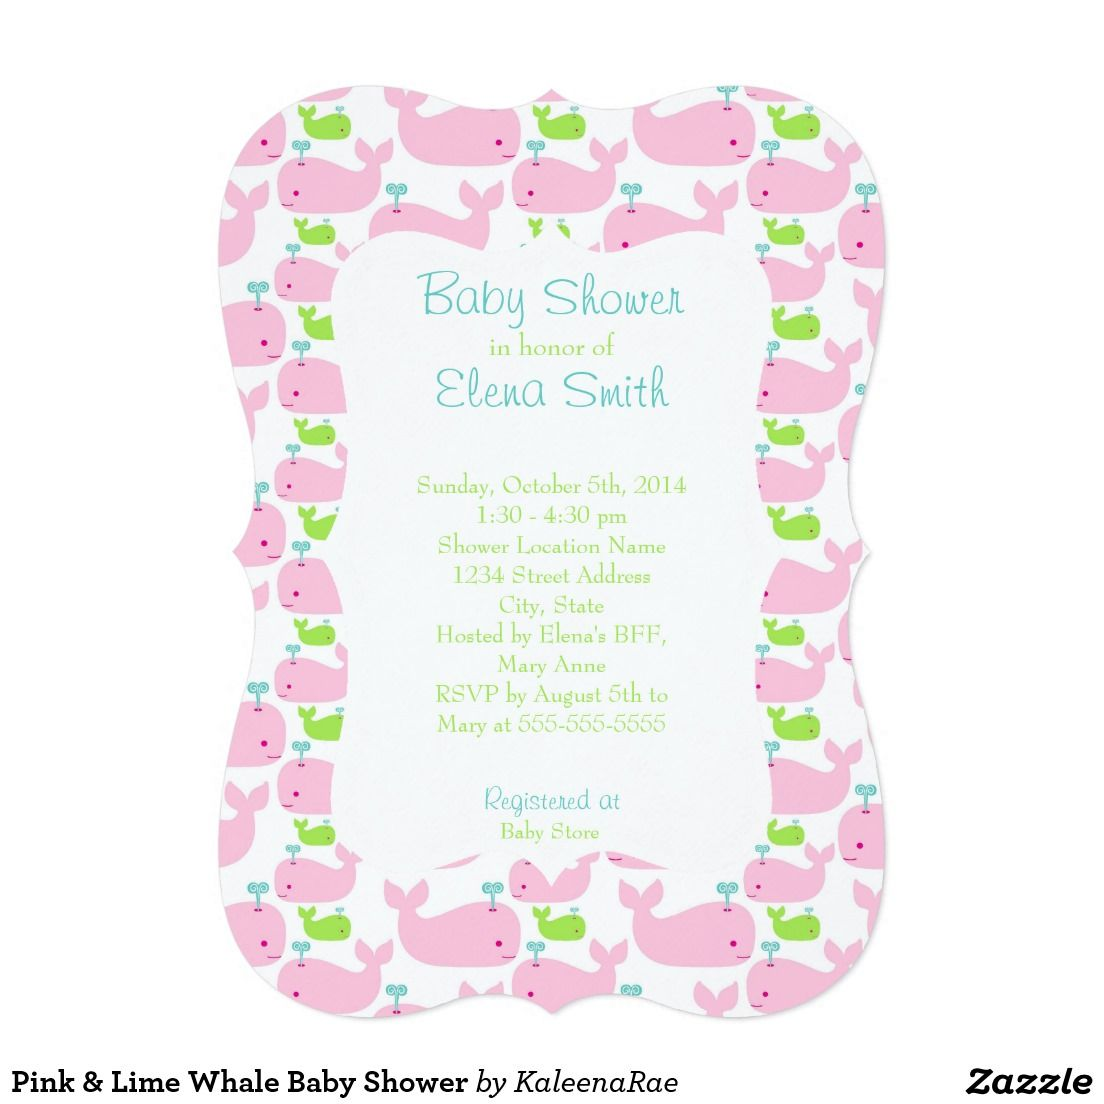 Pink & Lime Whale Baby Shower Invitations | Cute Girly Girl Baby ...